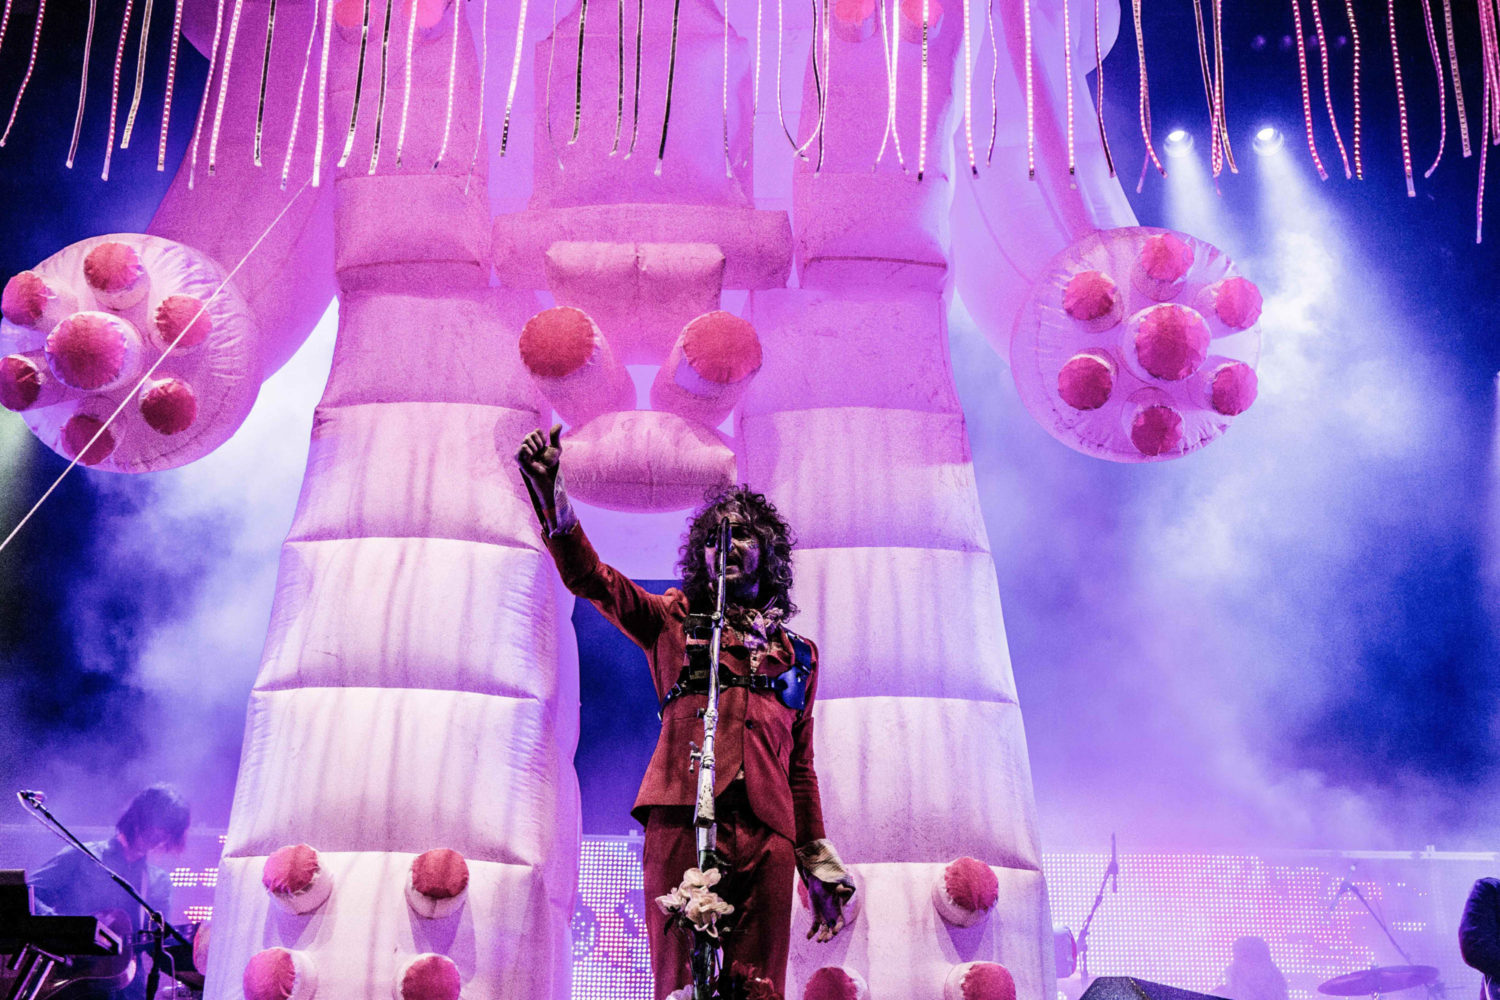 The Flaming Lips, Future Islands and The Chemical Brothers are headlining Bluedot 2018